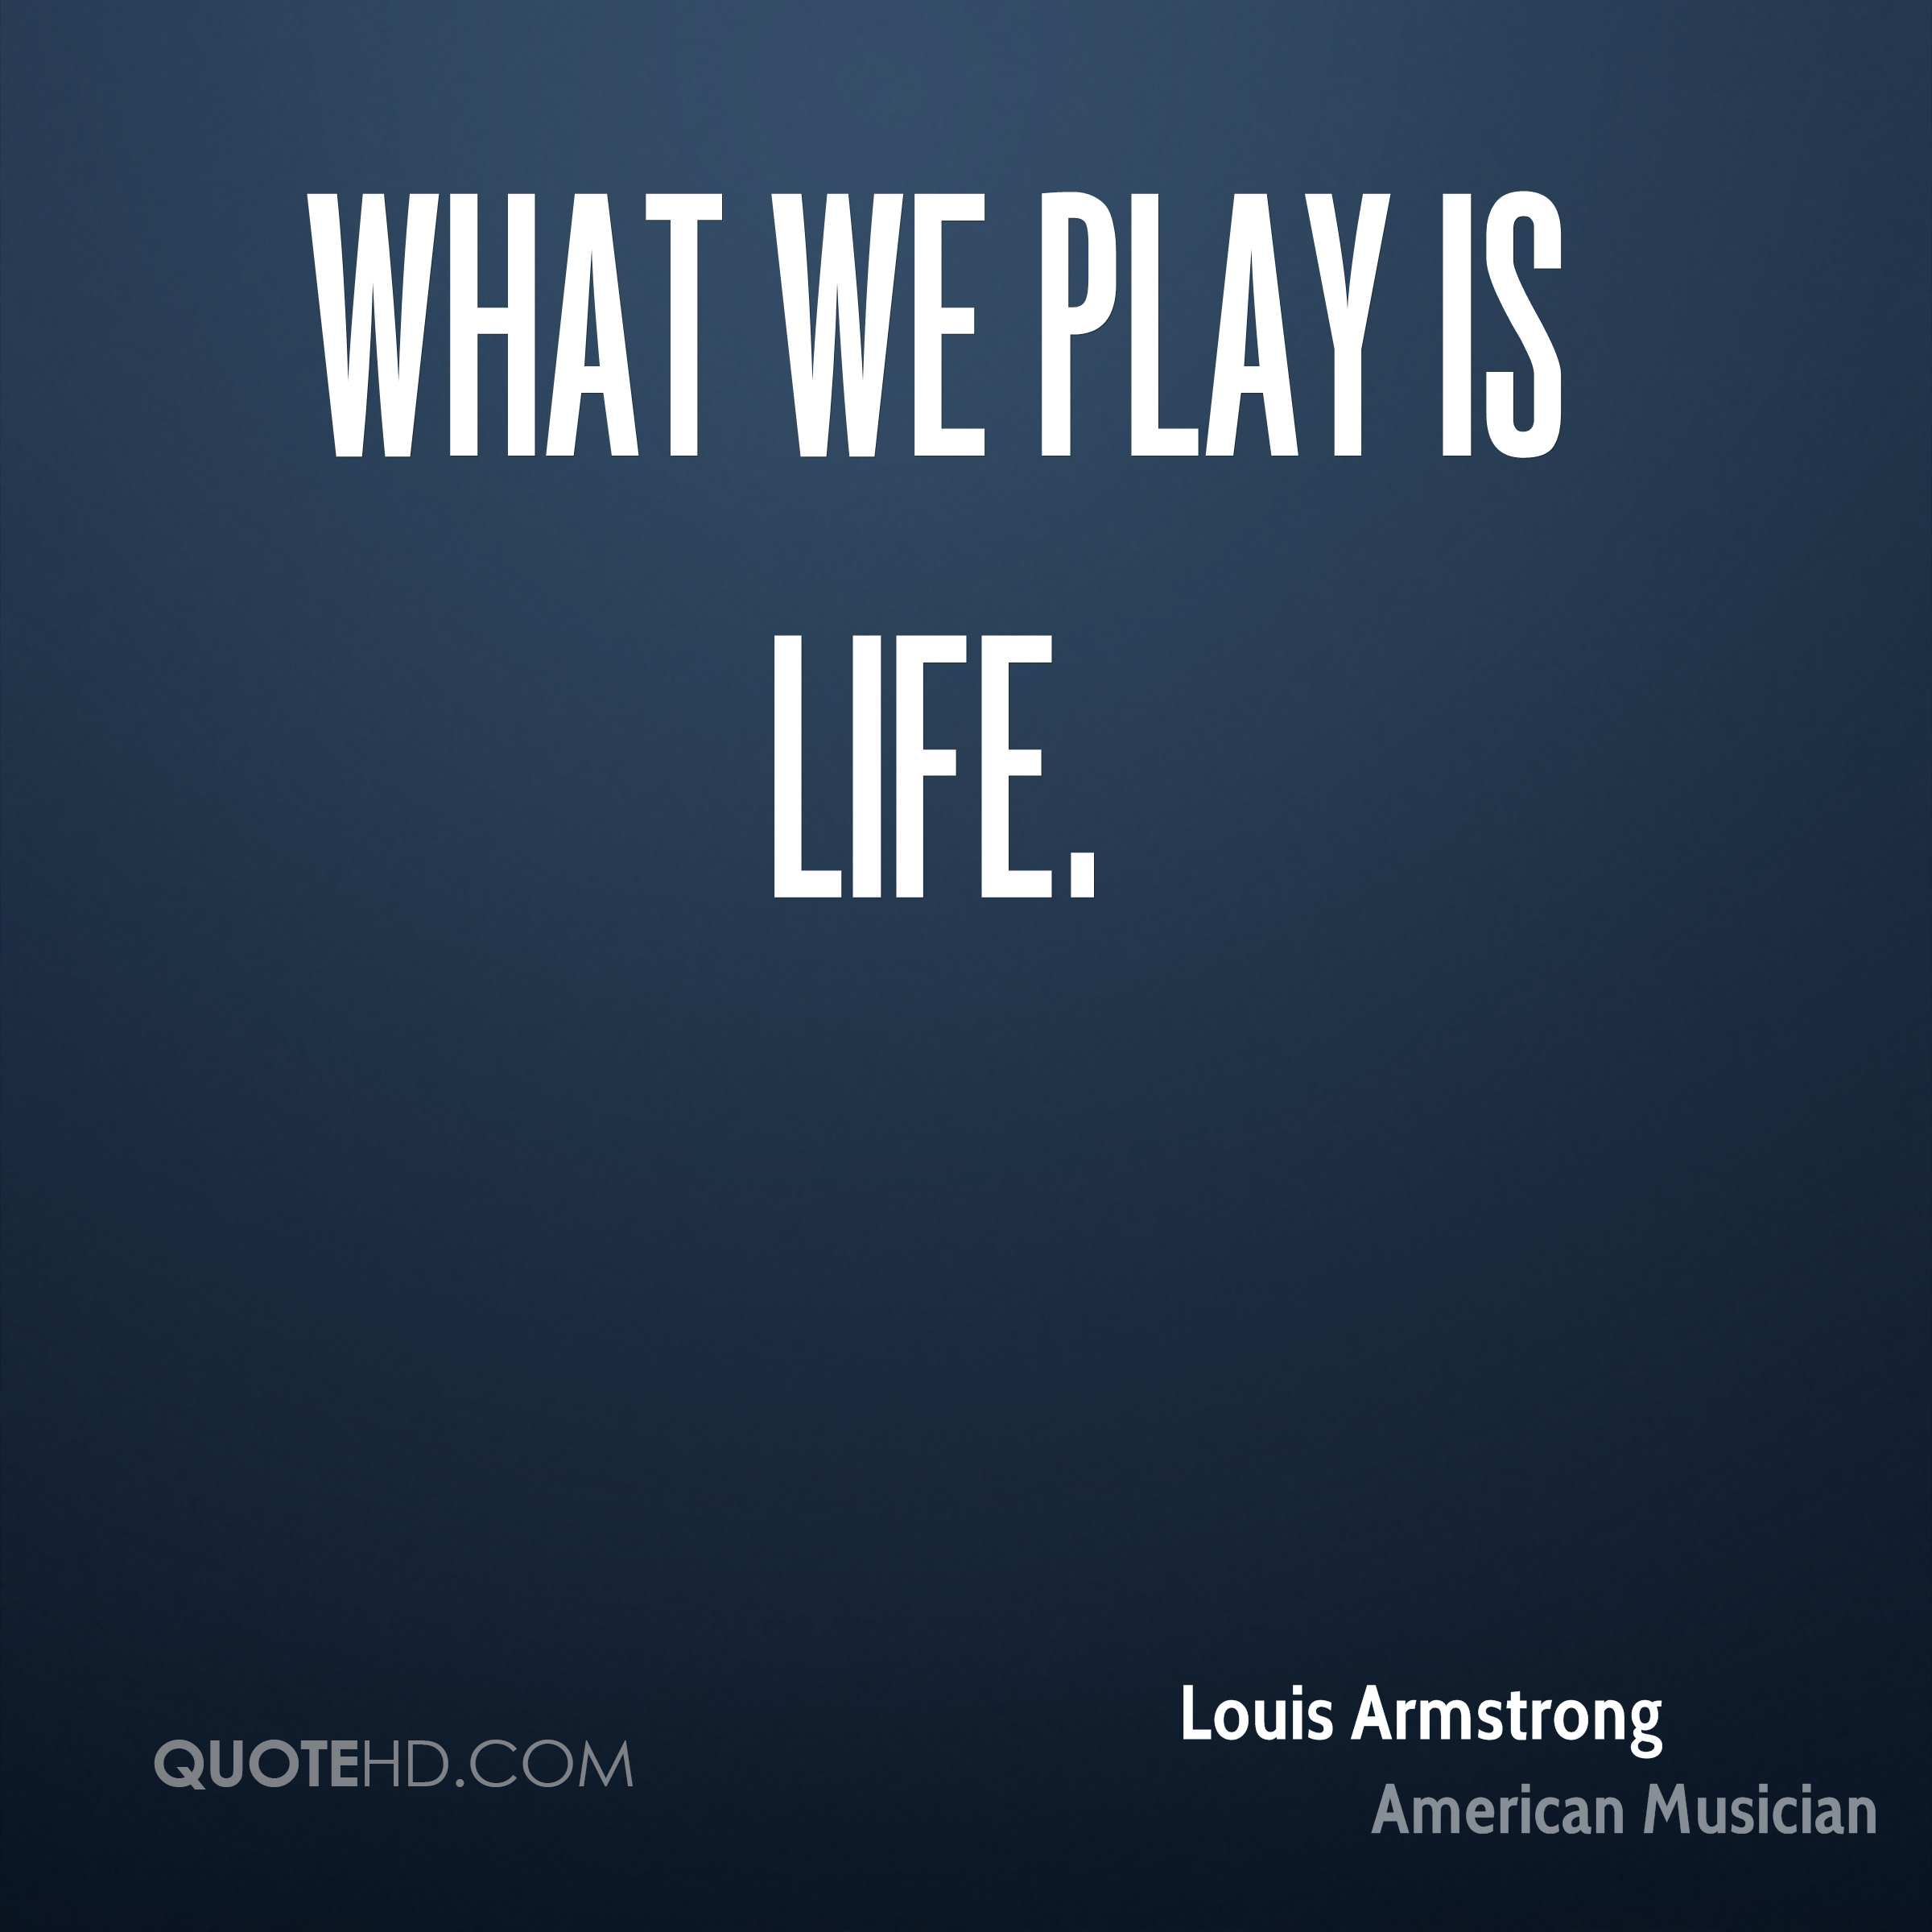 What we play is life.